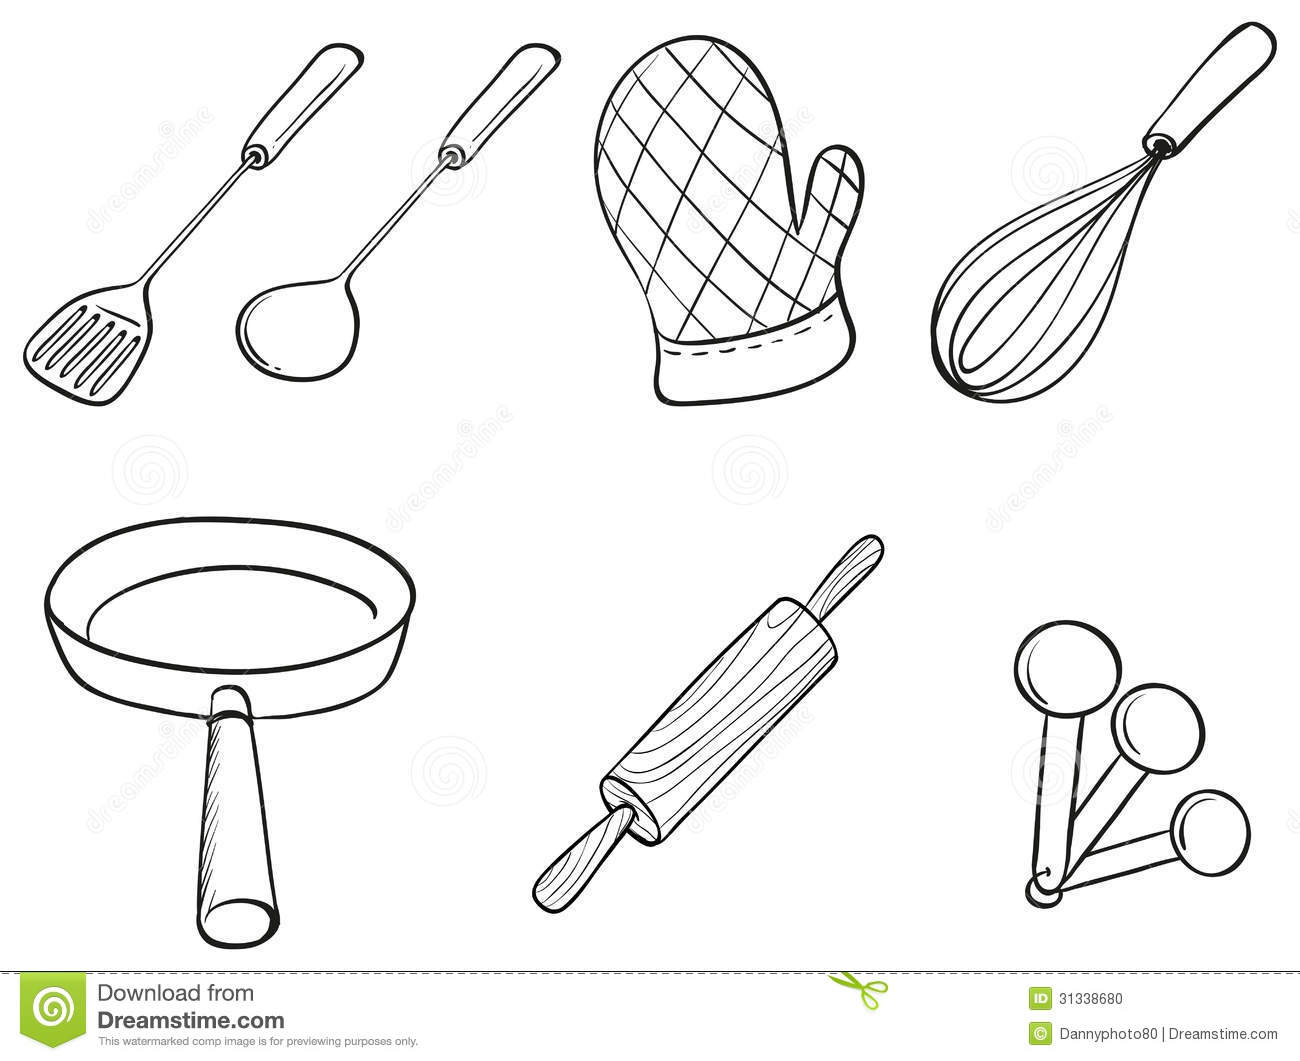 Silhouettes Of Kitchen Utensils Stock Vector Illustration Of Ladle